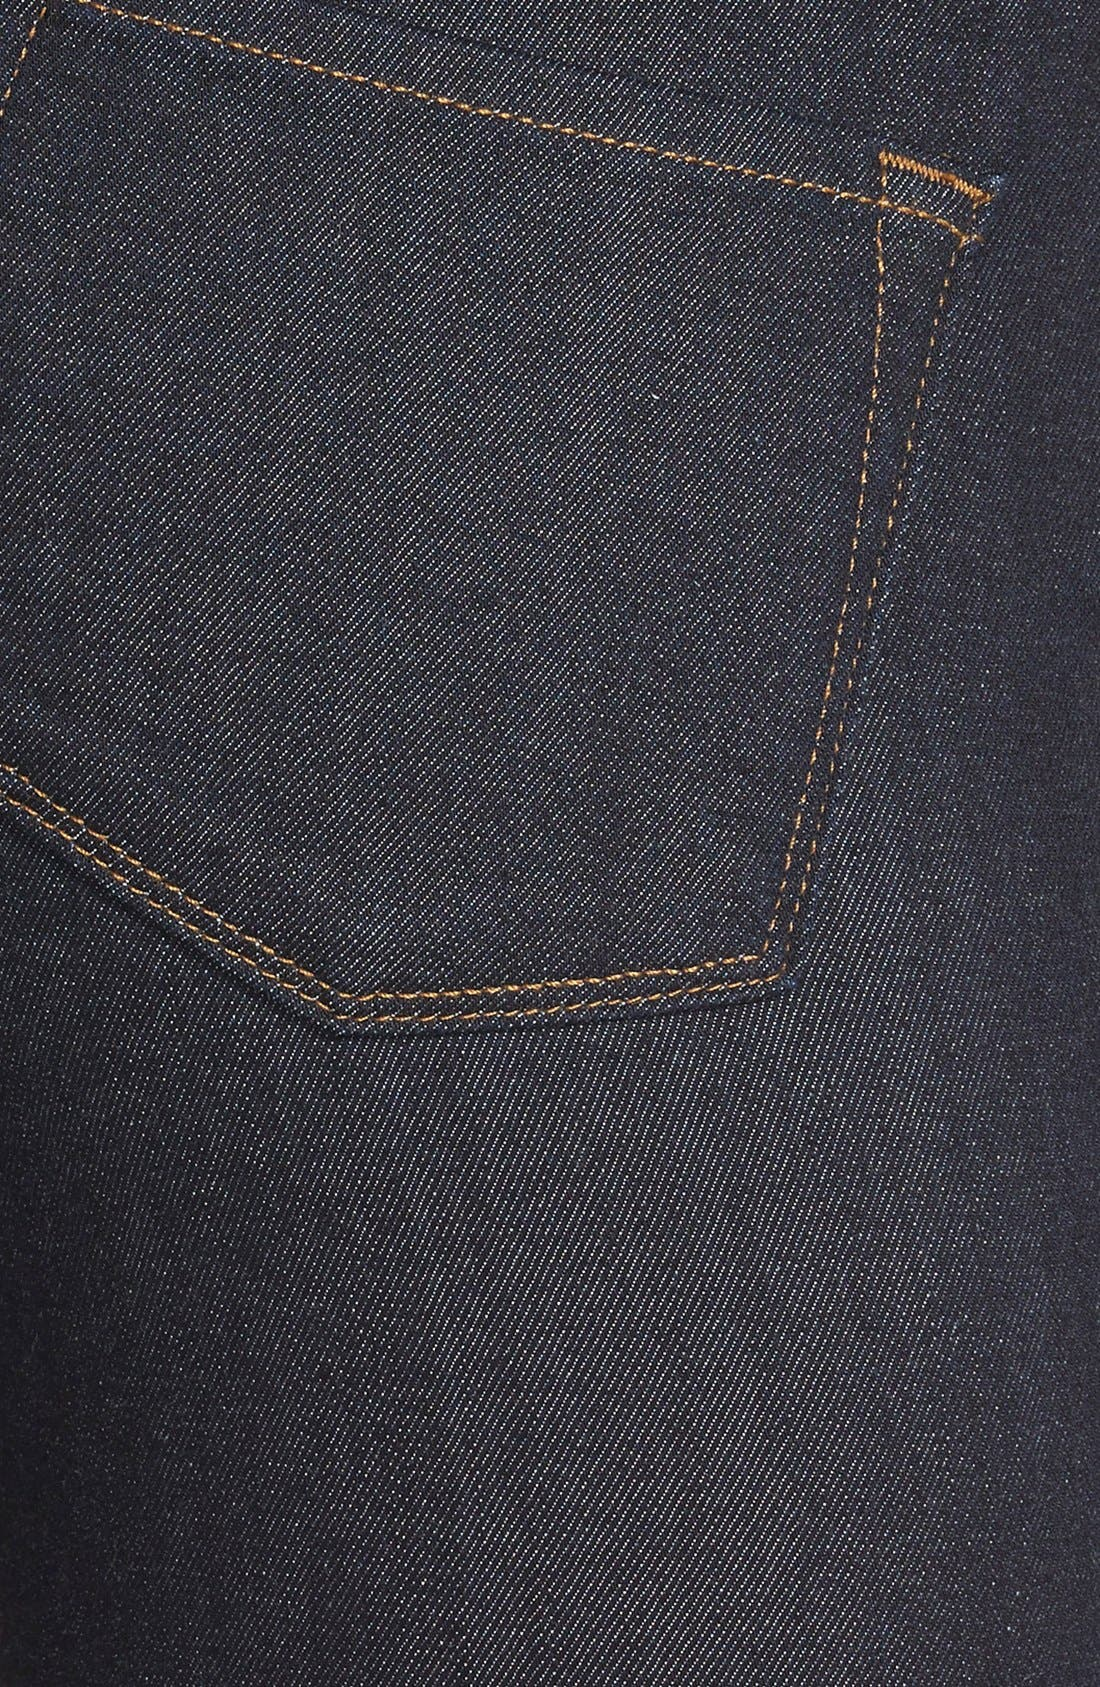 Maria High Waist Super Skinny Jeans,                             Alternate thumbnail 7, color,                             AFTER DARK